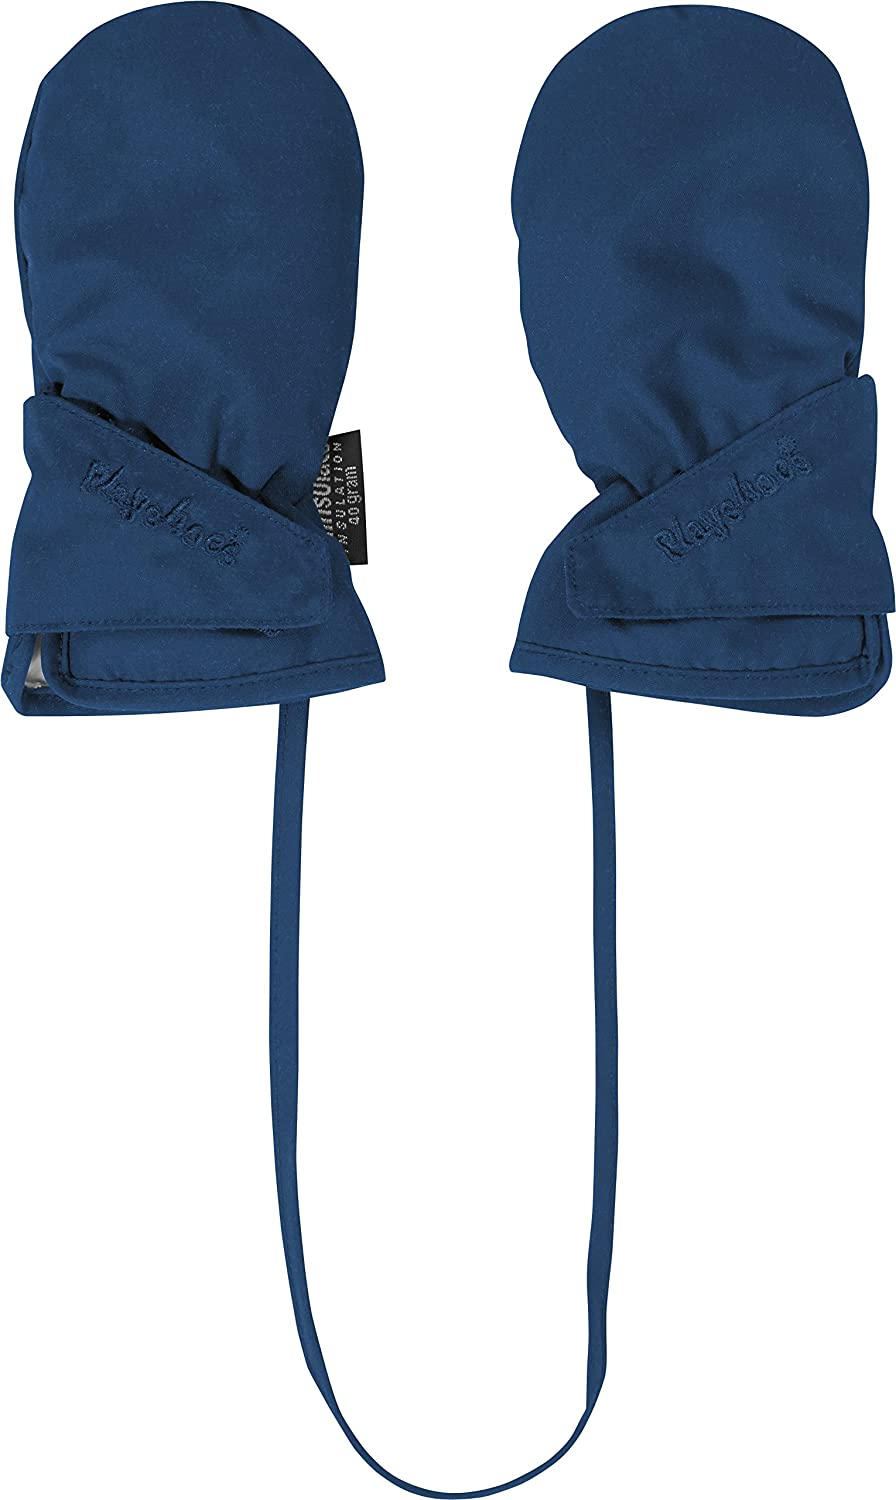 Playshoes Unisex Baby Winter Thinsulate Insulation 3m Fleece Lining Mittens Blue One Size 422030